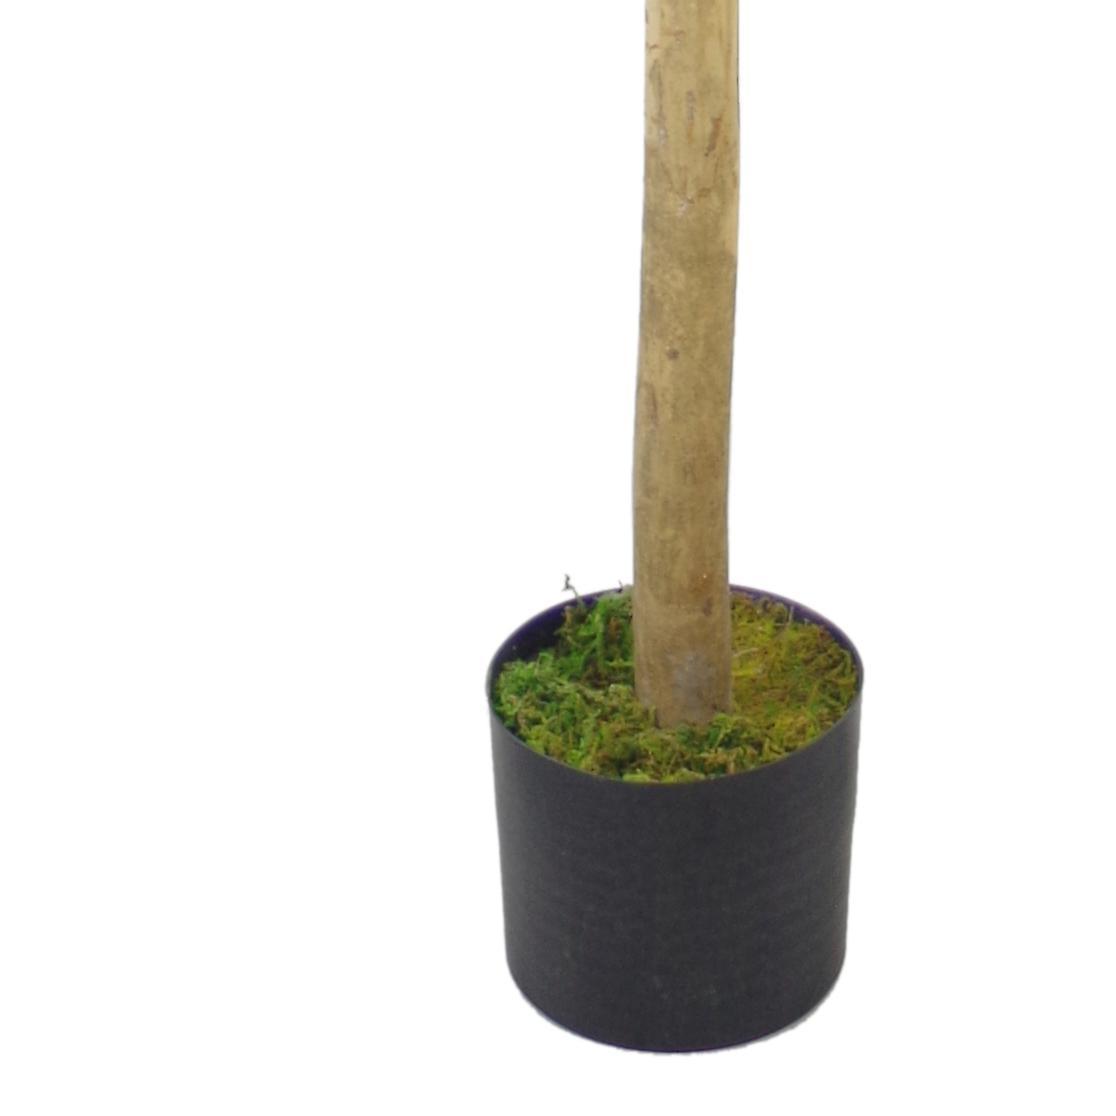 Pair of 150cm (5ft) Premium Artificial Bay Trees with pots